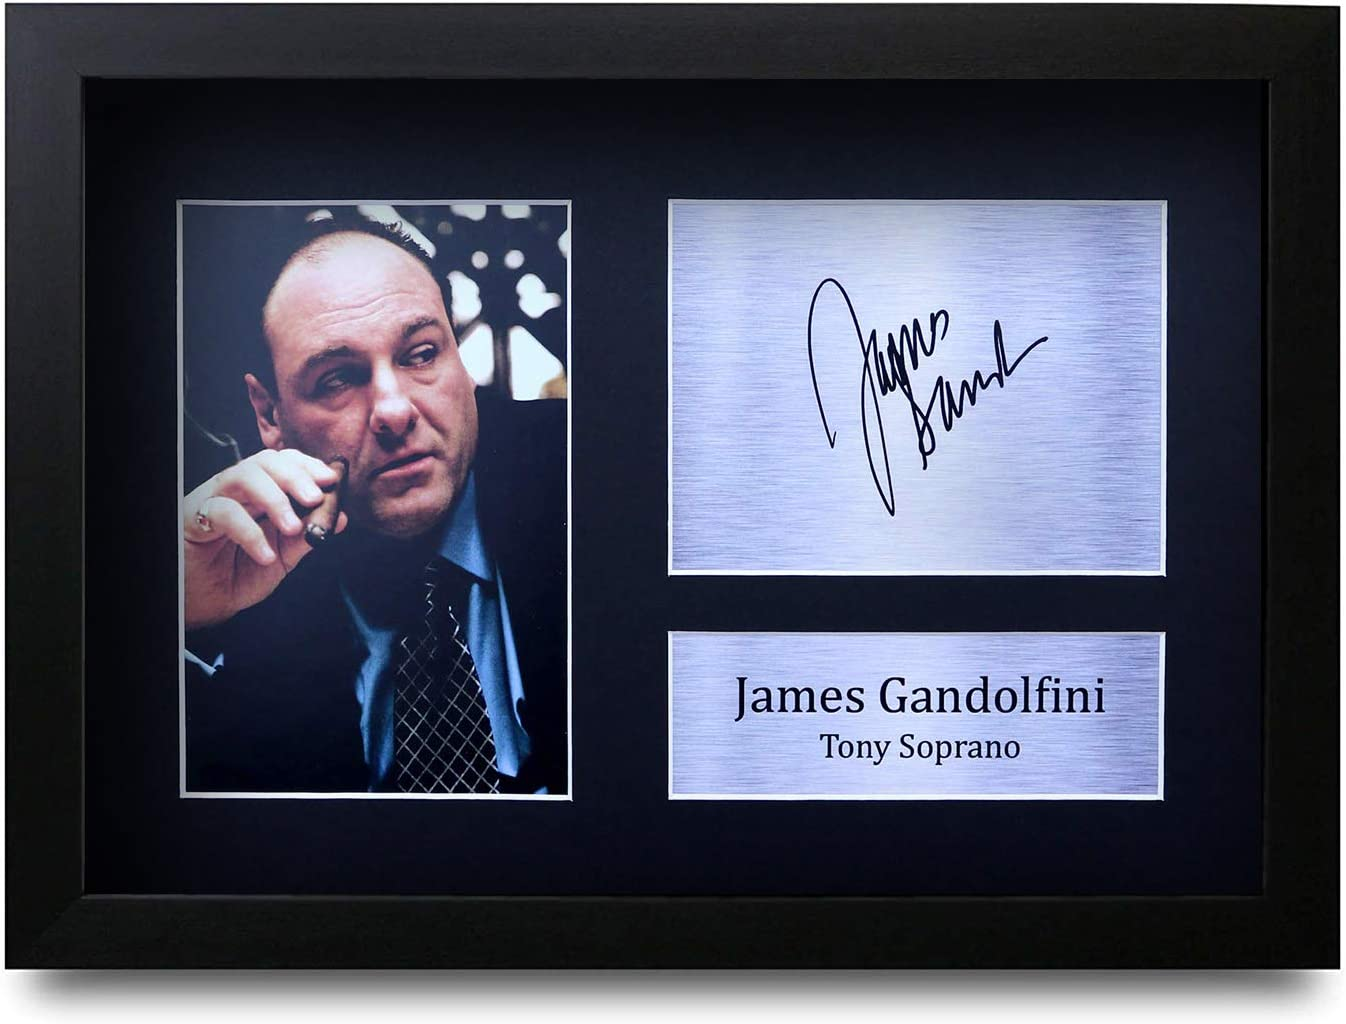 Hwc Trading James Gandolfini Gift Signed Framed A4 Printed Autograph Sopranos Gifts Photo Display Amazon Co Uk Kitchen Home